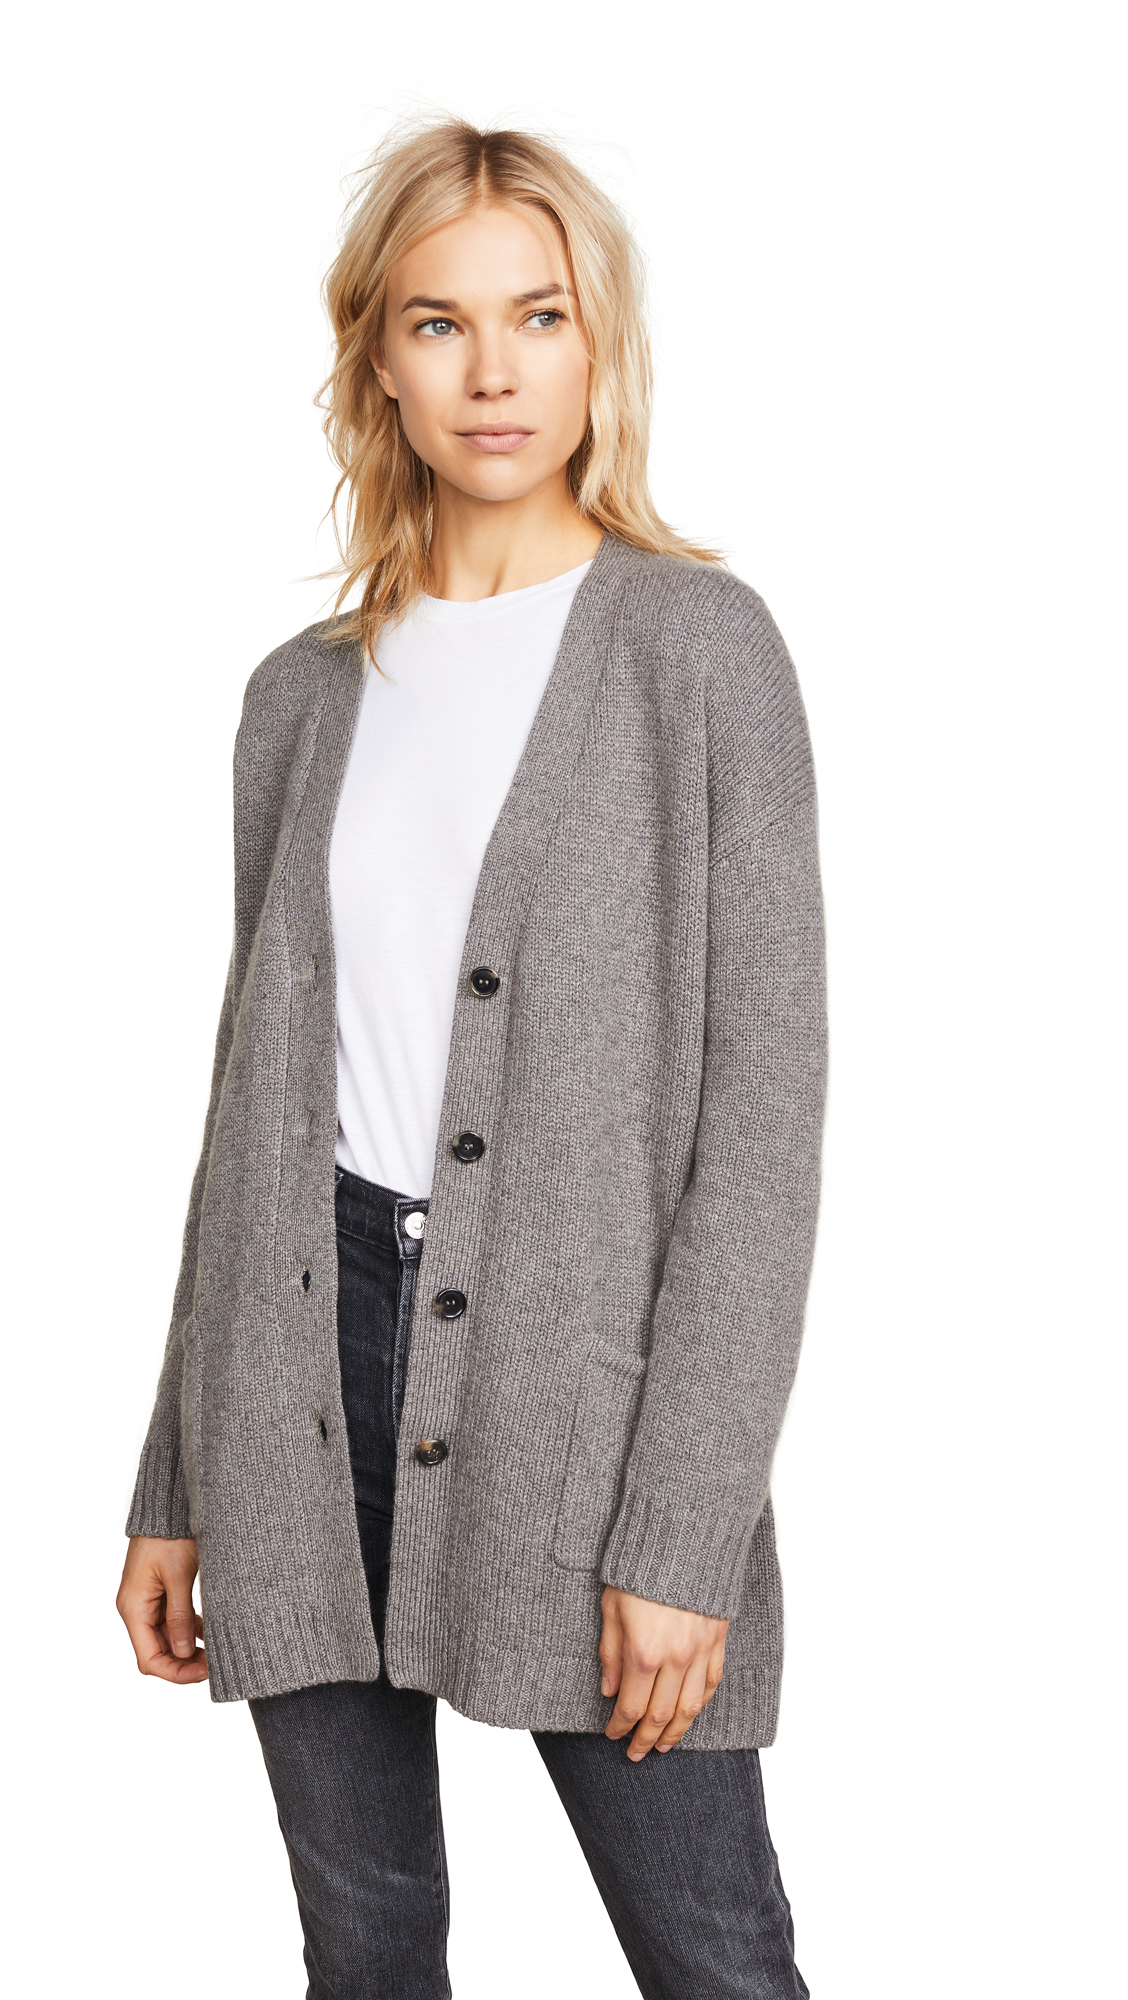 SABLYN LILY LONG CARDIGAN